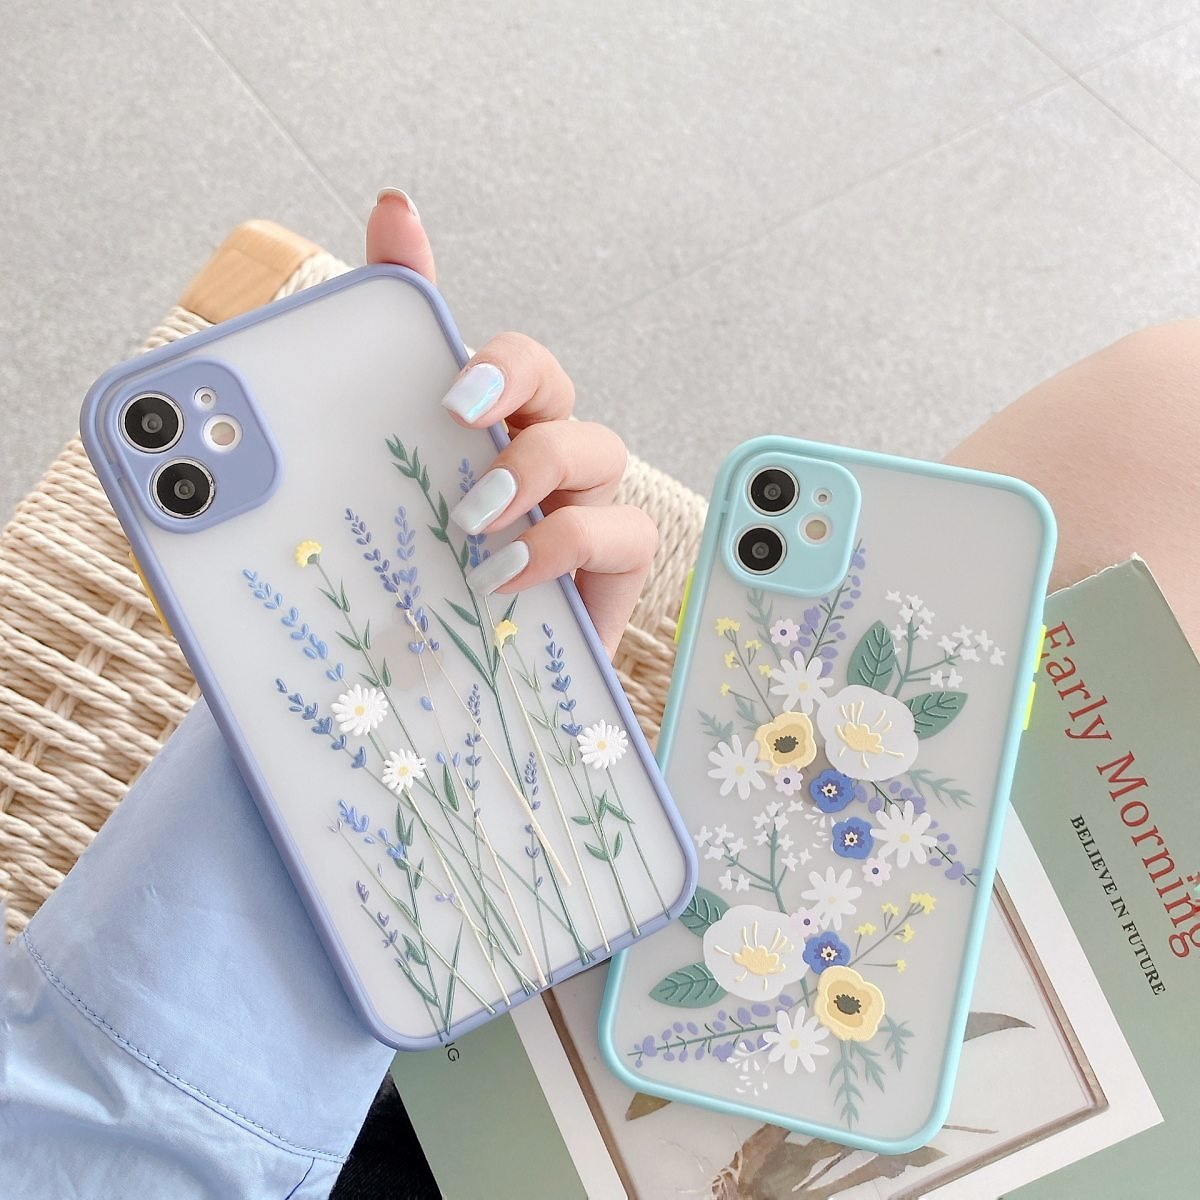 US $3.12  Luxury 3D Relief Flower Case For IPhone 12 Mini 11 Pro Max X XR XS Max 7 8 Plus Soft Bumper Transparent Matte PC Back Cover Fitted Cases  - AliExpress